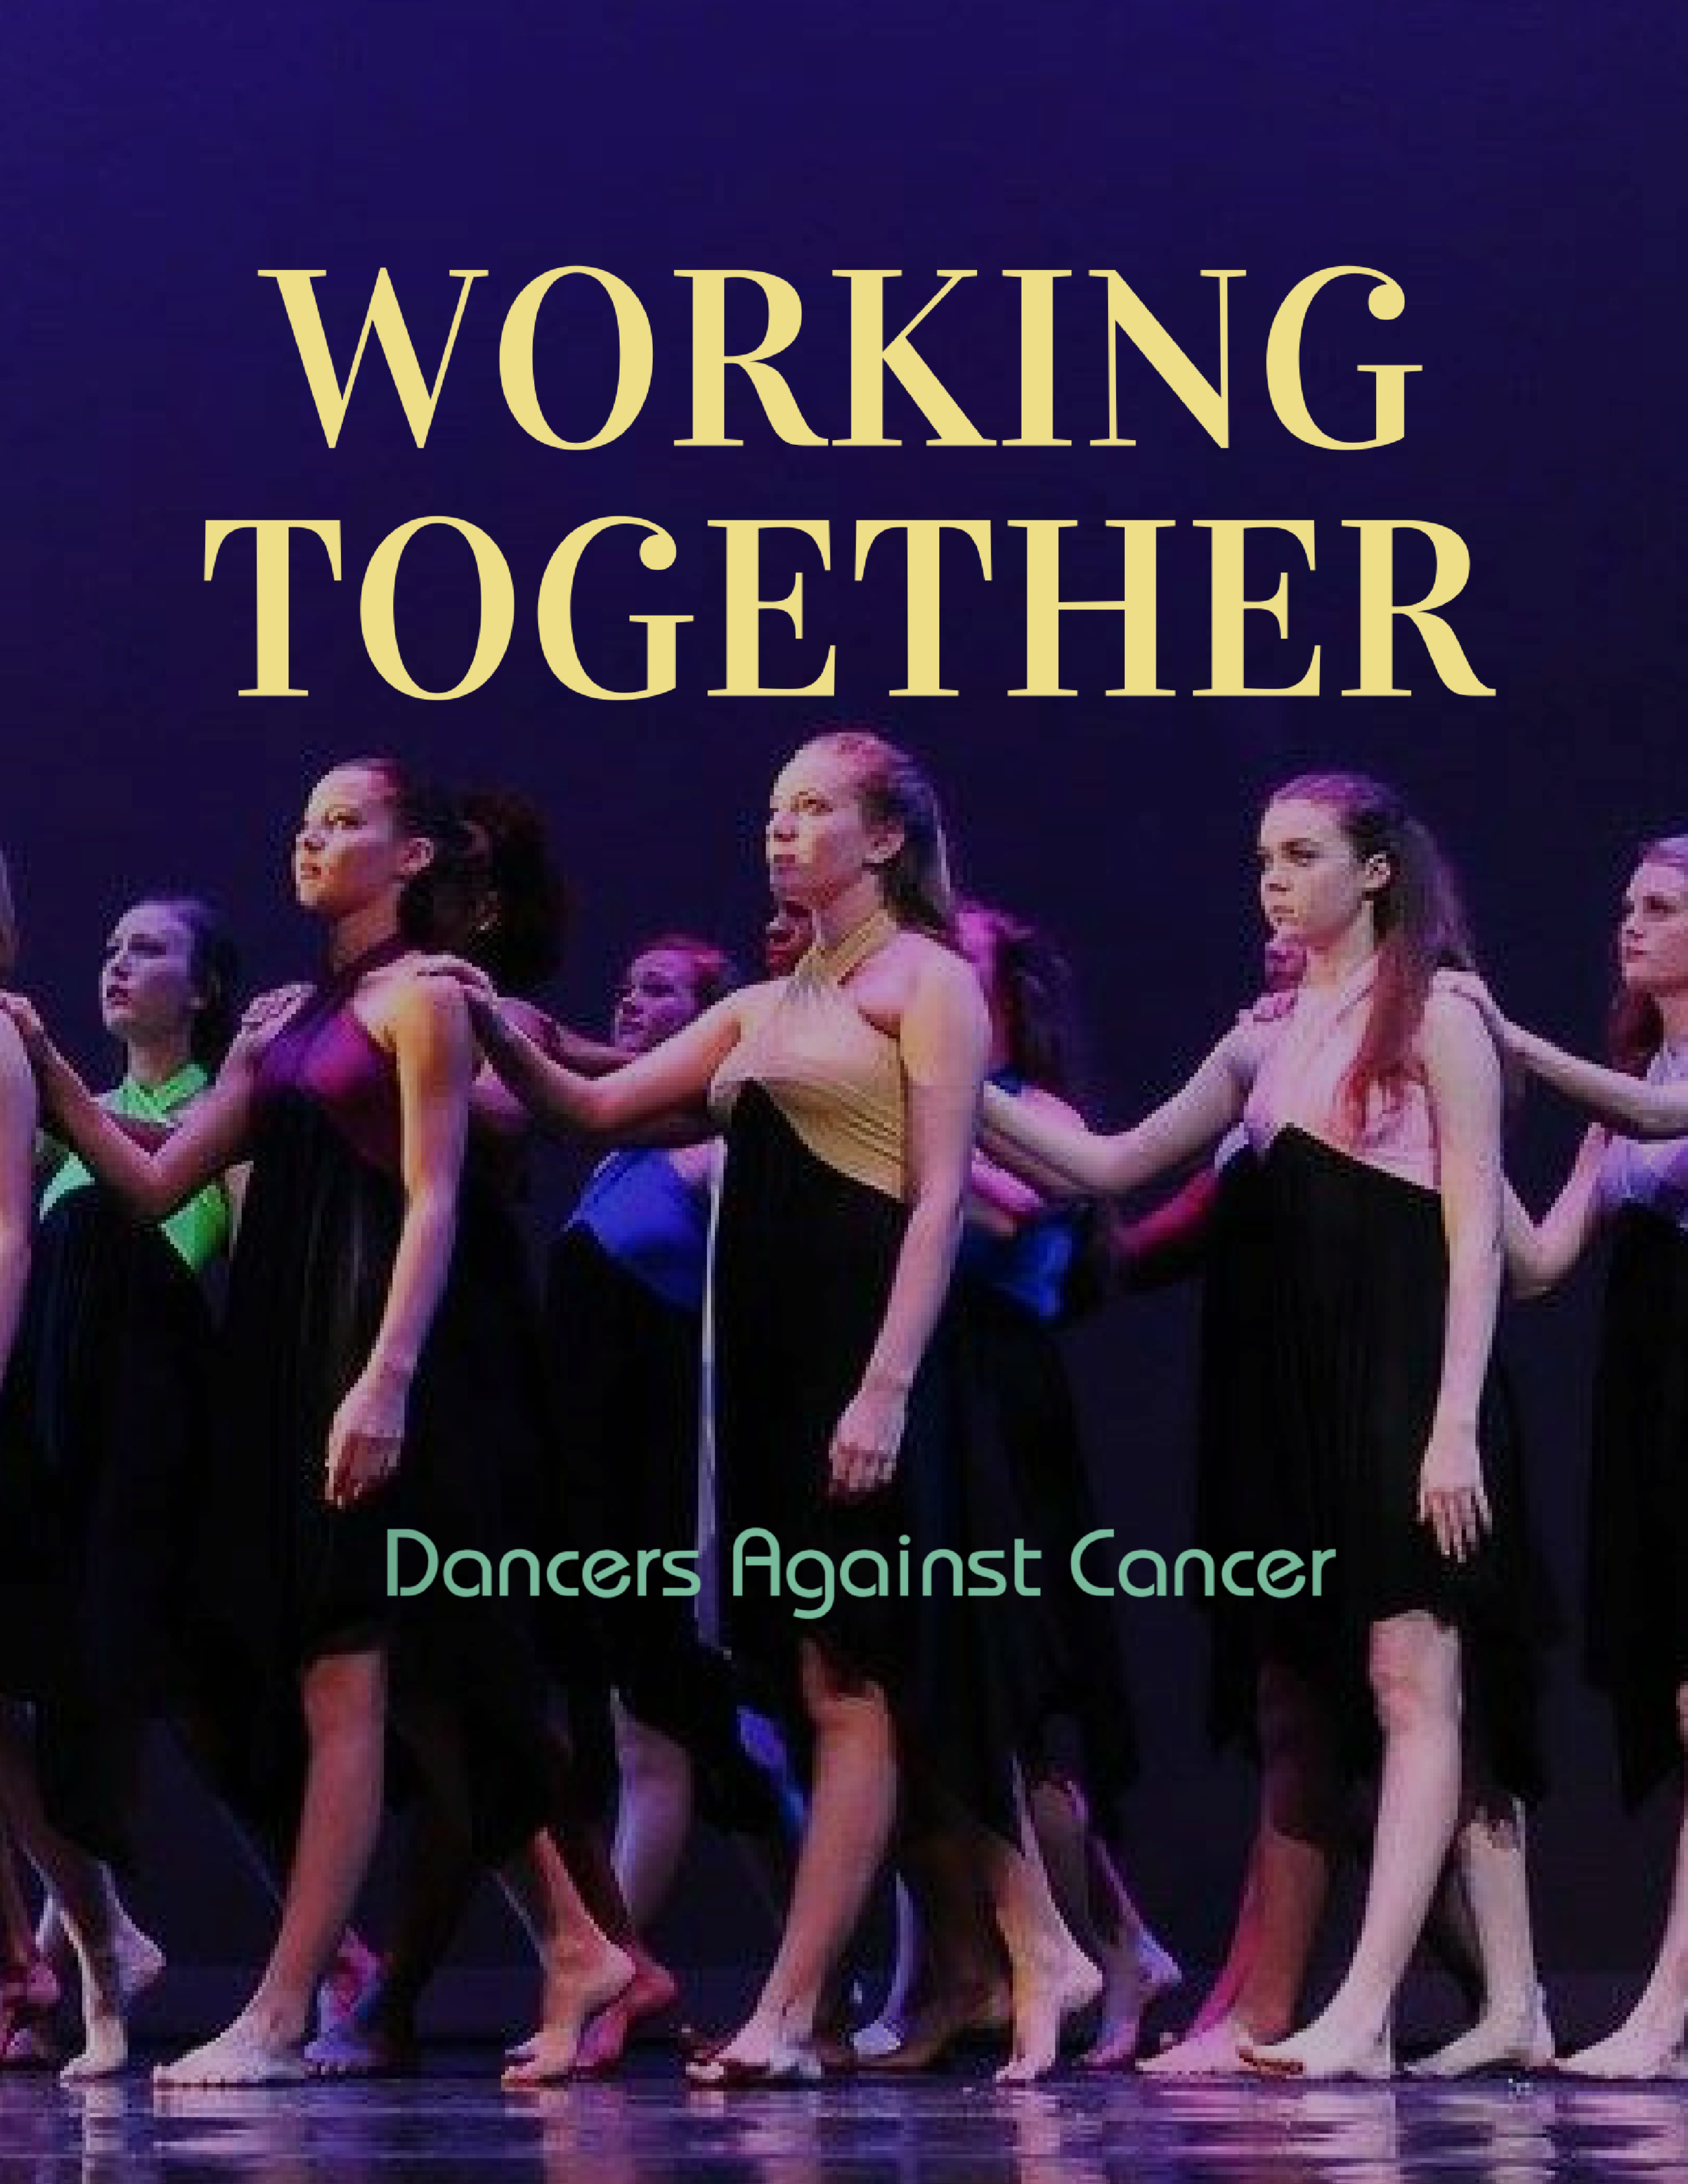 THE DAC TEAM - Dancers Against Cancer has a great team to help us get the word out and make an impact in communities around the world. The DAC departments have helped to provide support to patients and their families for over 10 years.   — Mariah Jackson, Impact Volunteer